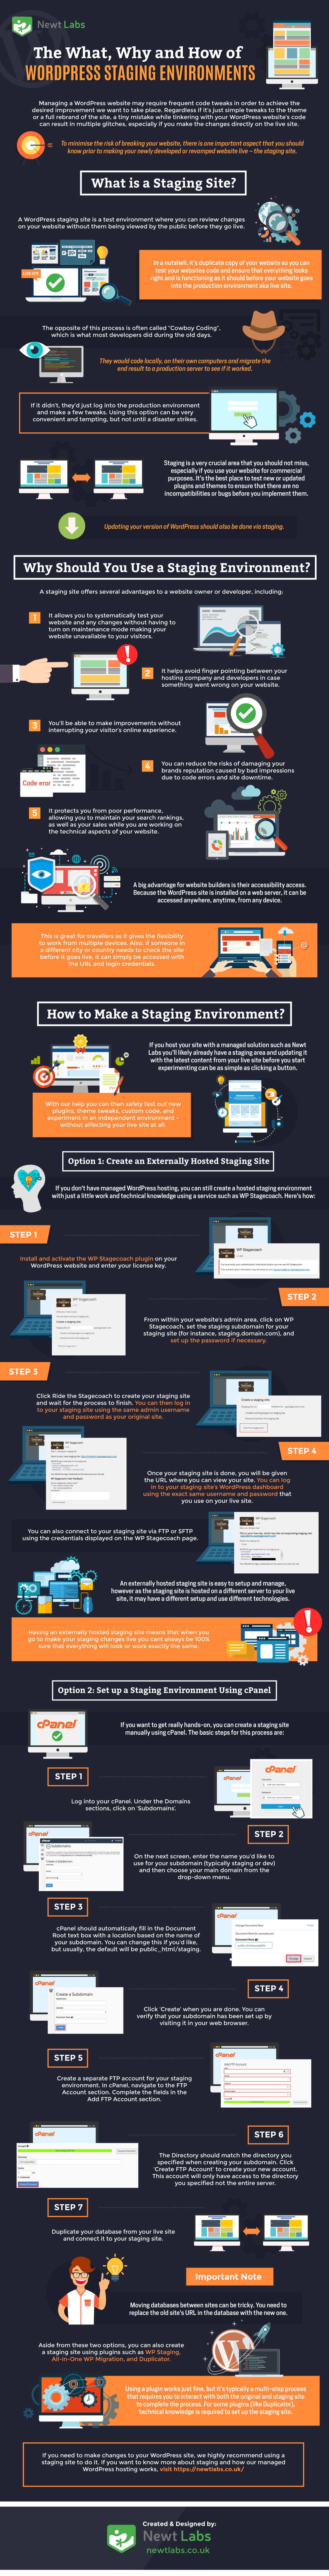 The What, Why and How of WordPress Staging Environments Infographic